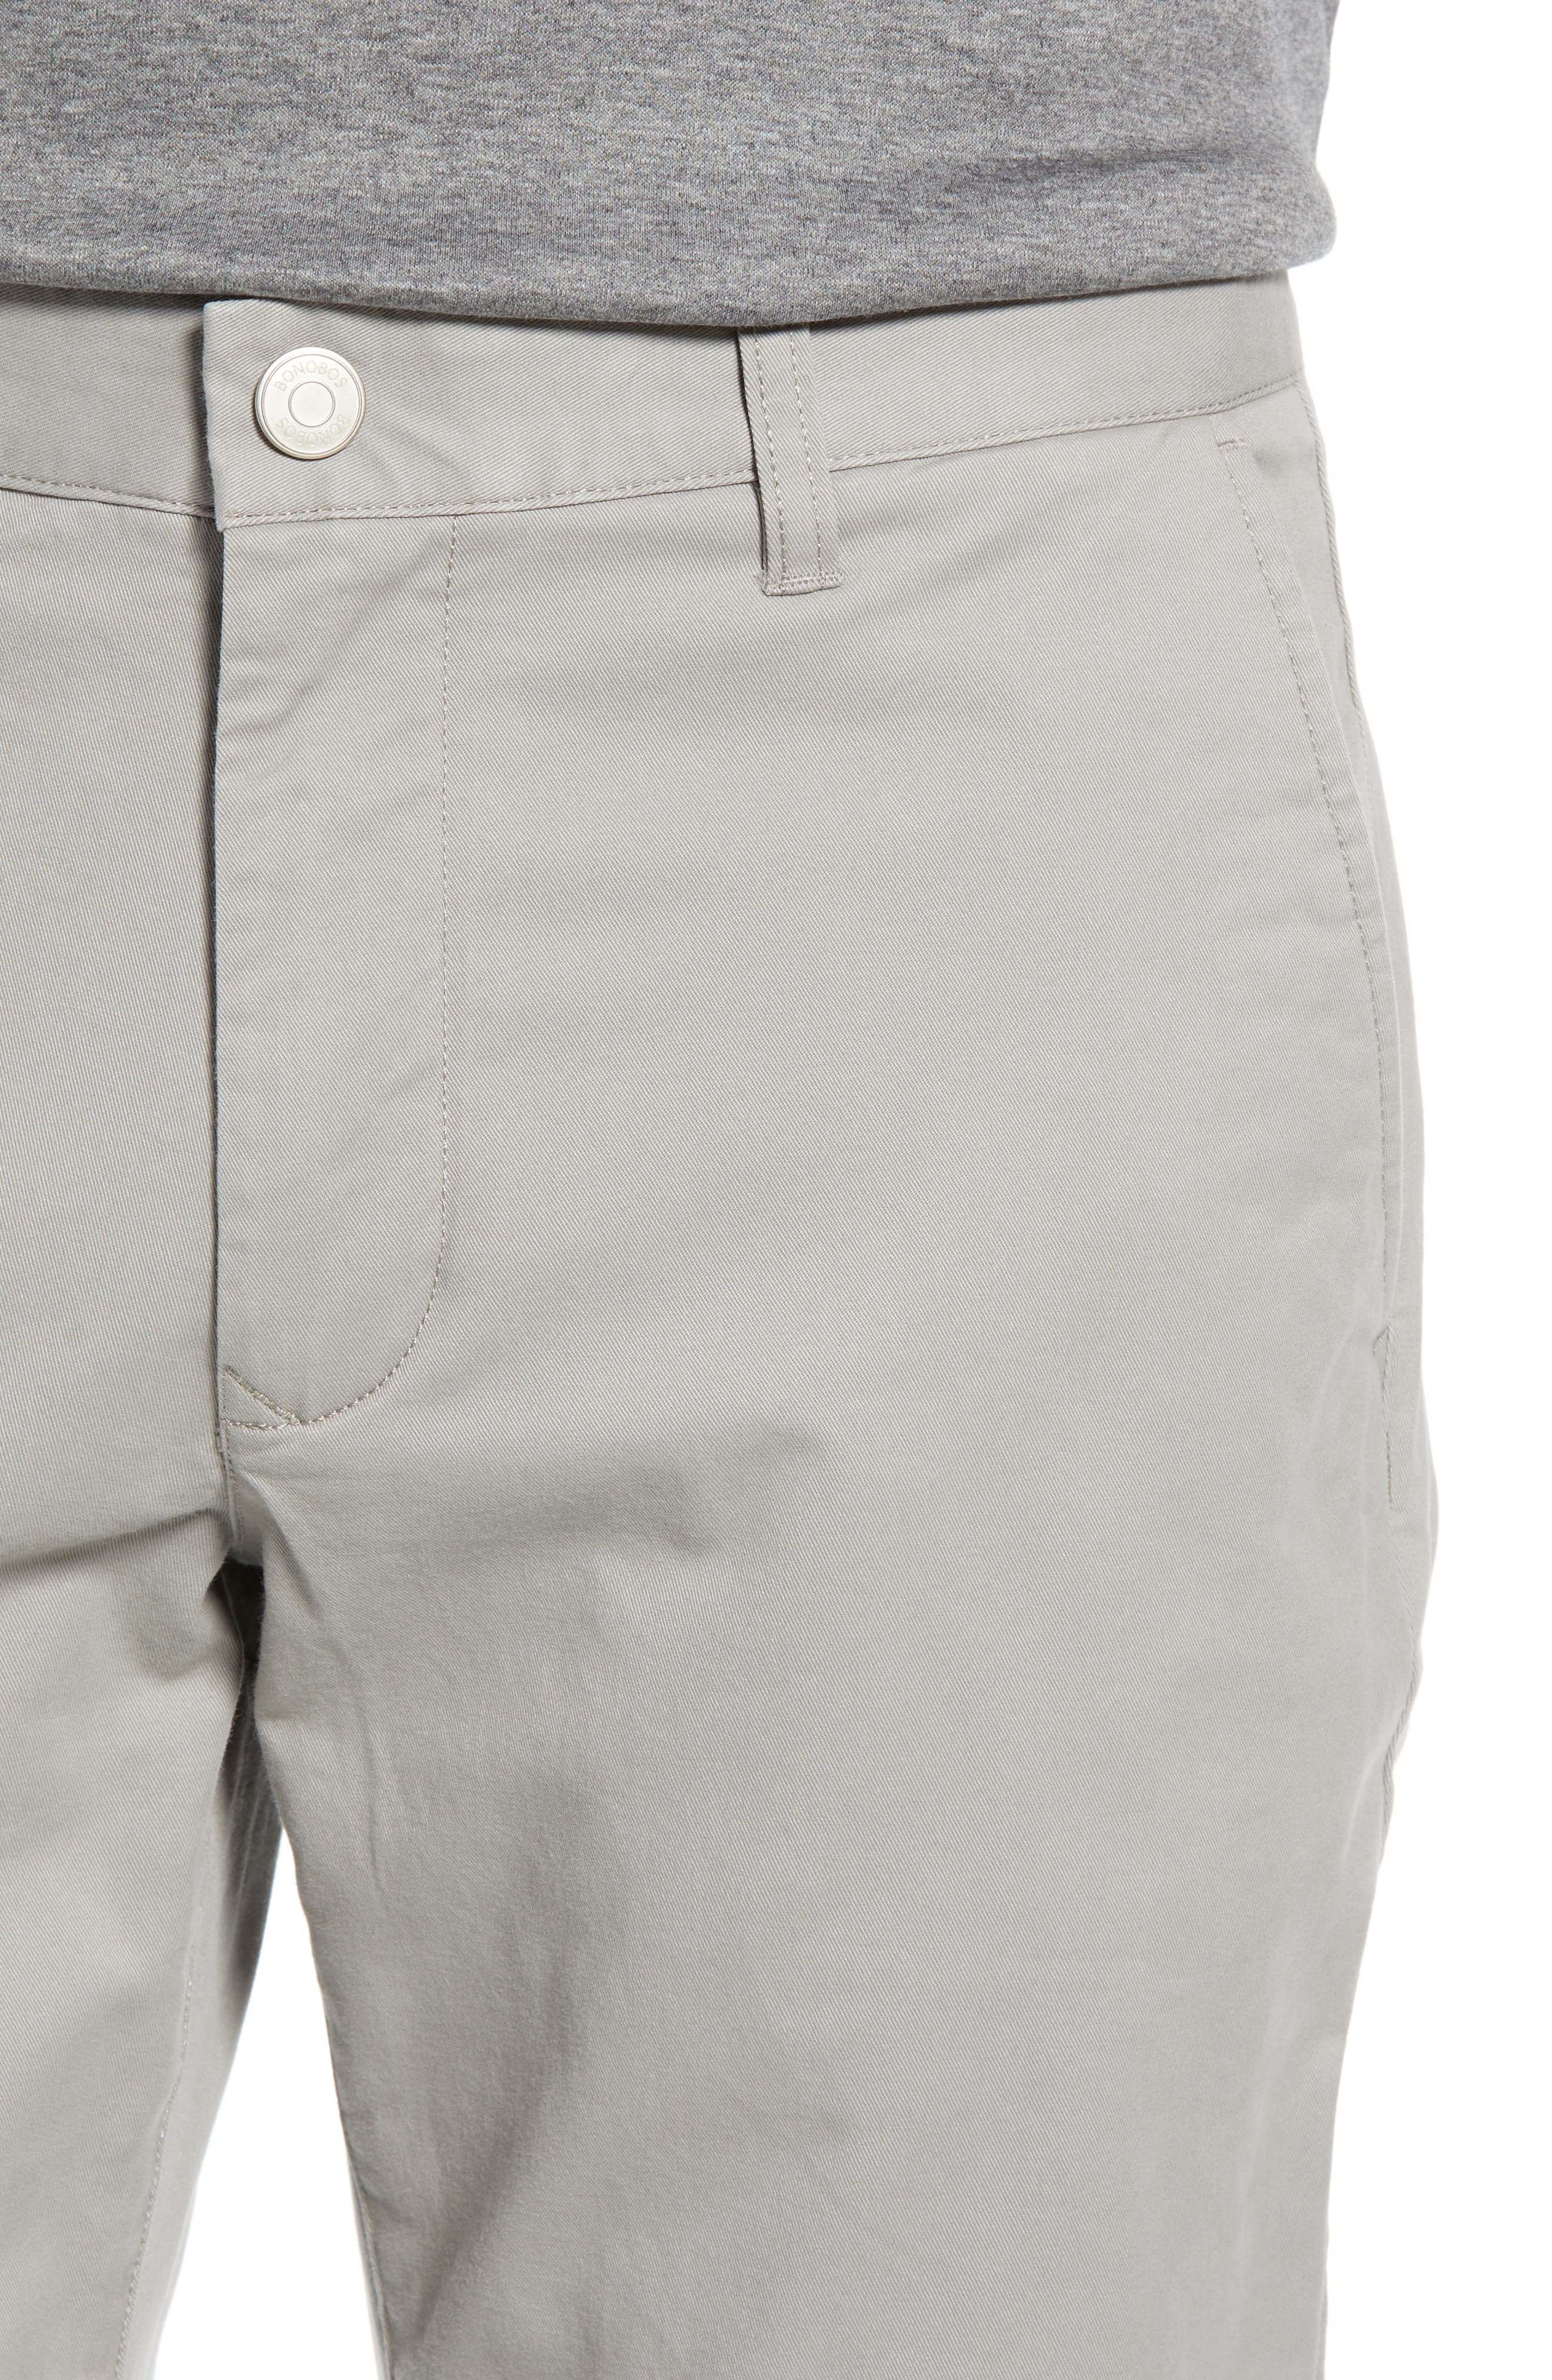 BONOBOS,                             Athletic Fit Stretch Washed Chinos,                             Alternate thumbnail 4, color,                             GREY DOGS